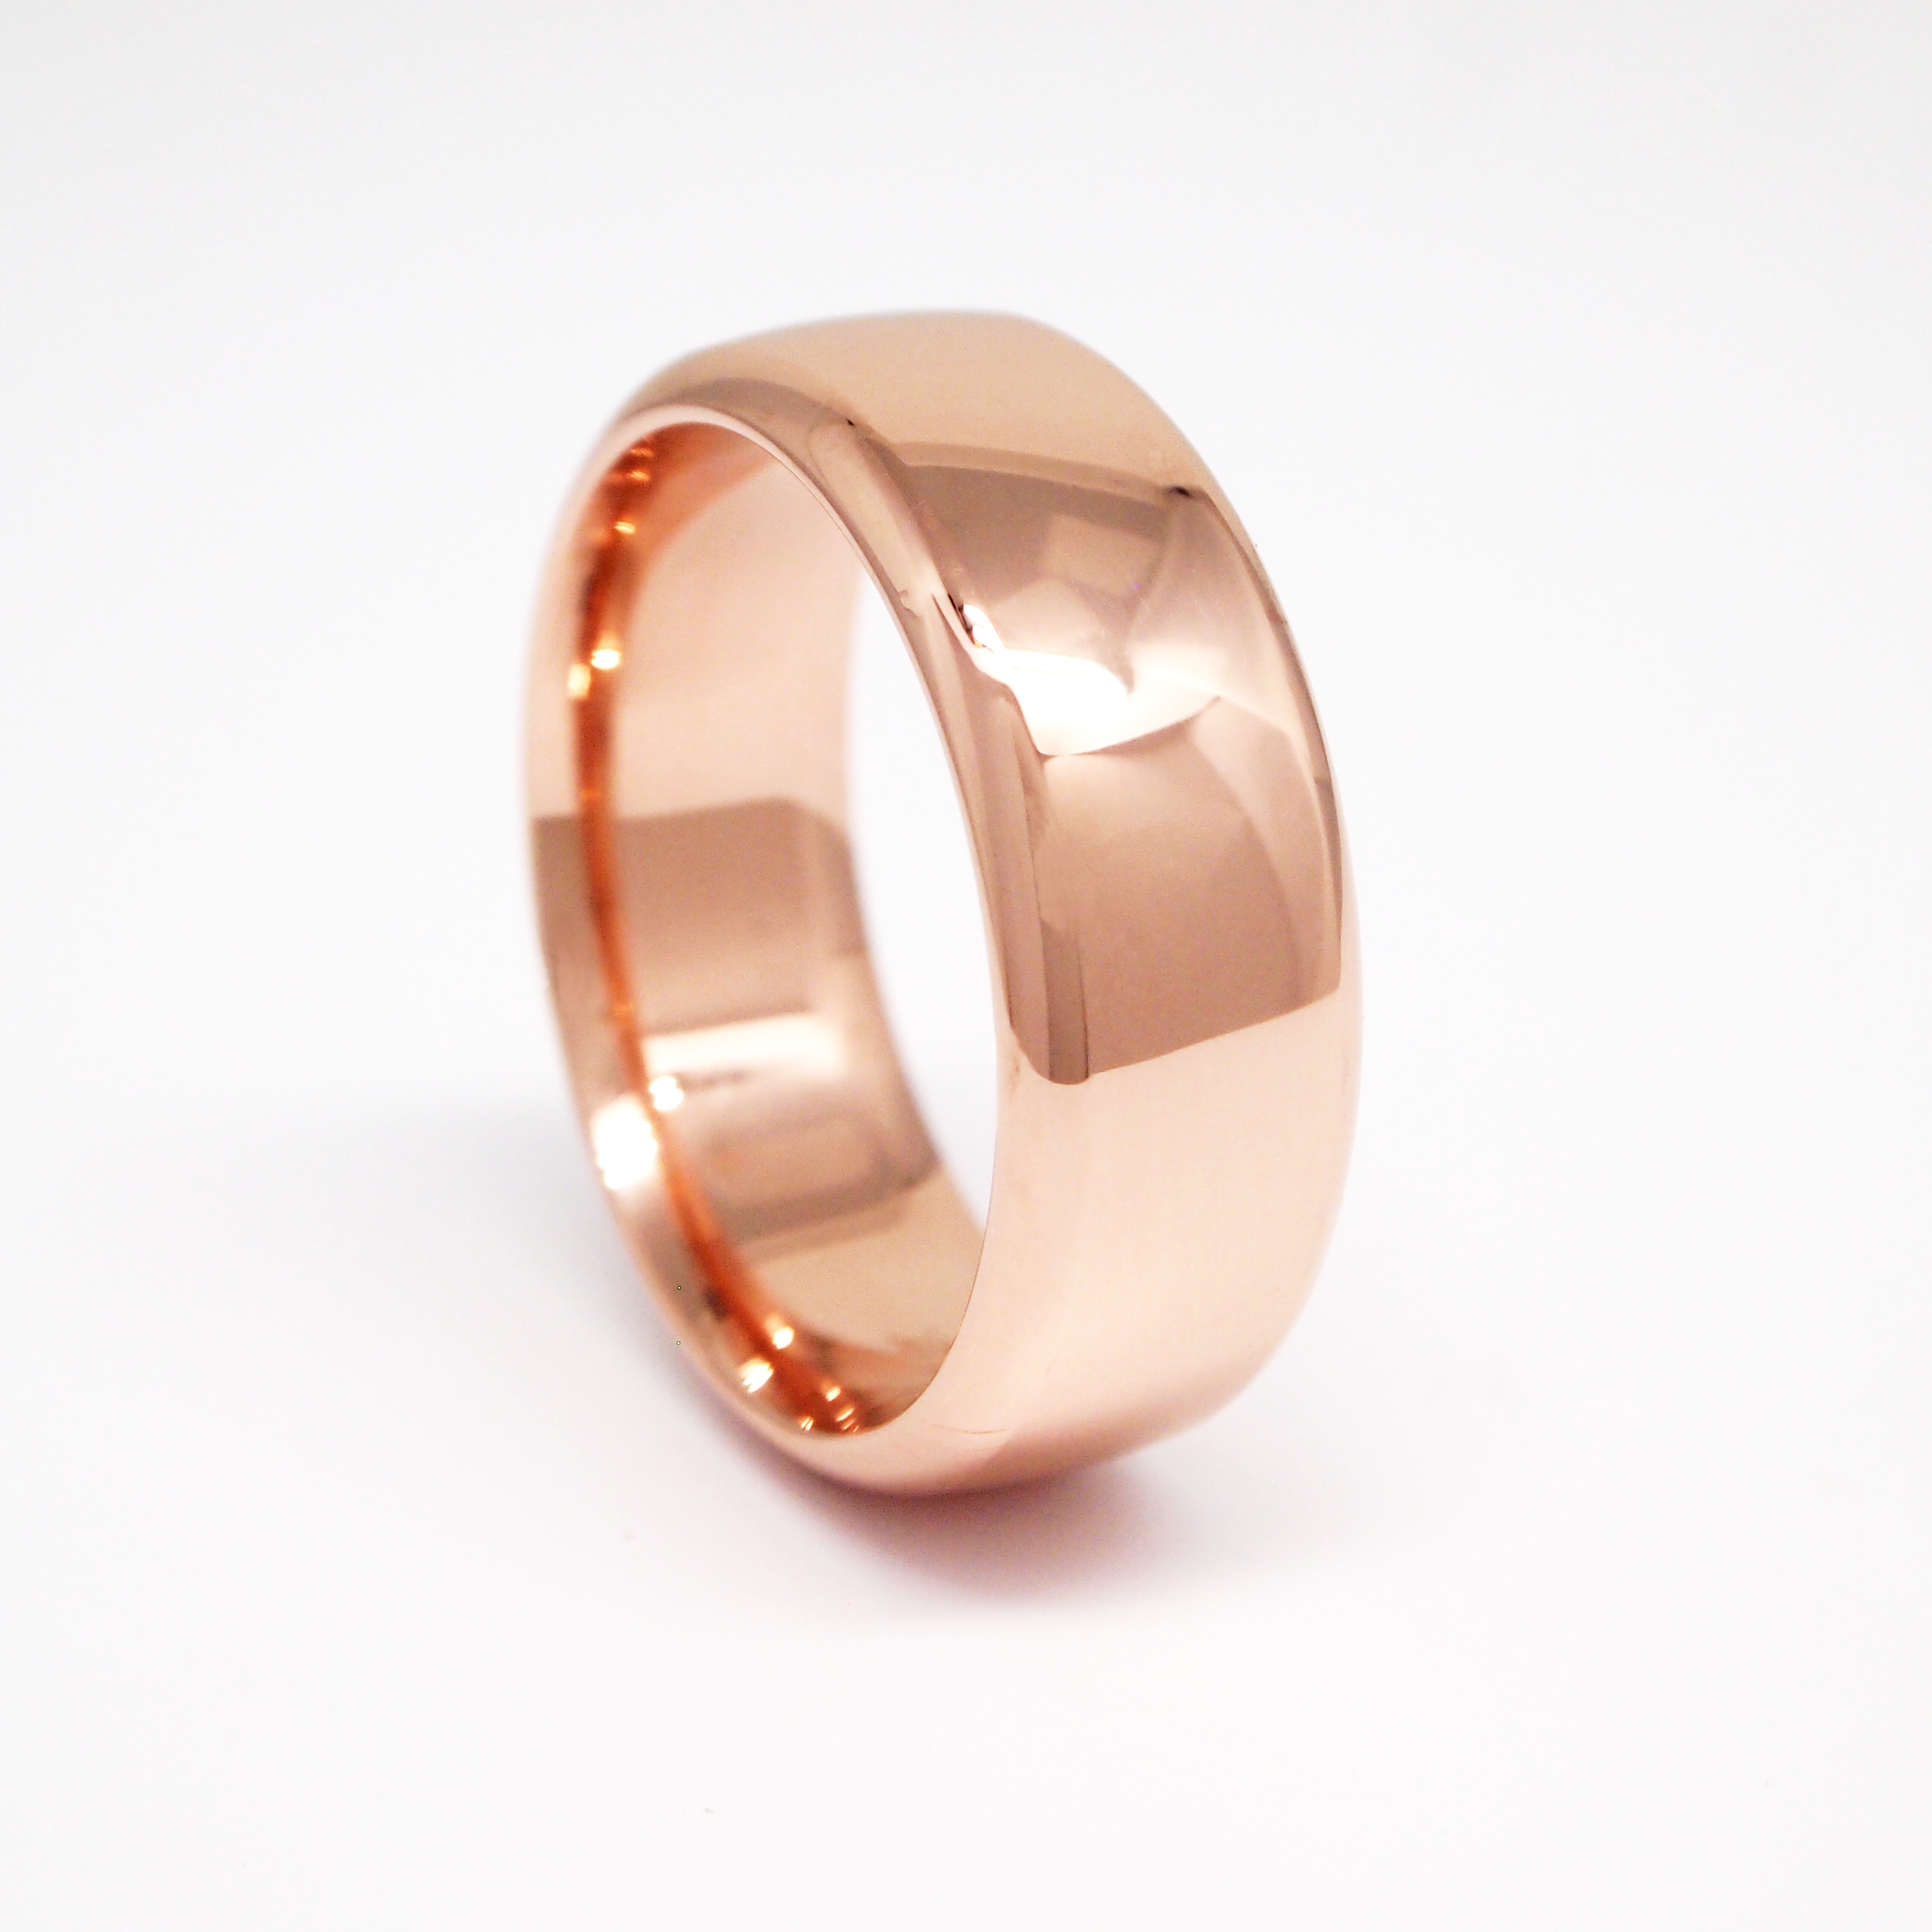 14K Rose Gold Heavy Weight 8mm Mens Wedding Band Featuring A Low Dome And High Polish